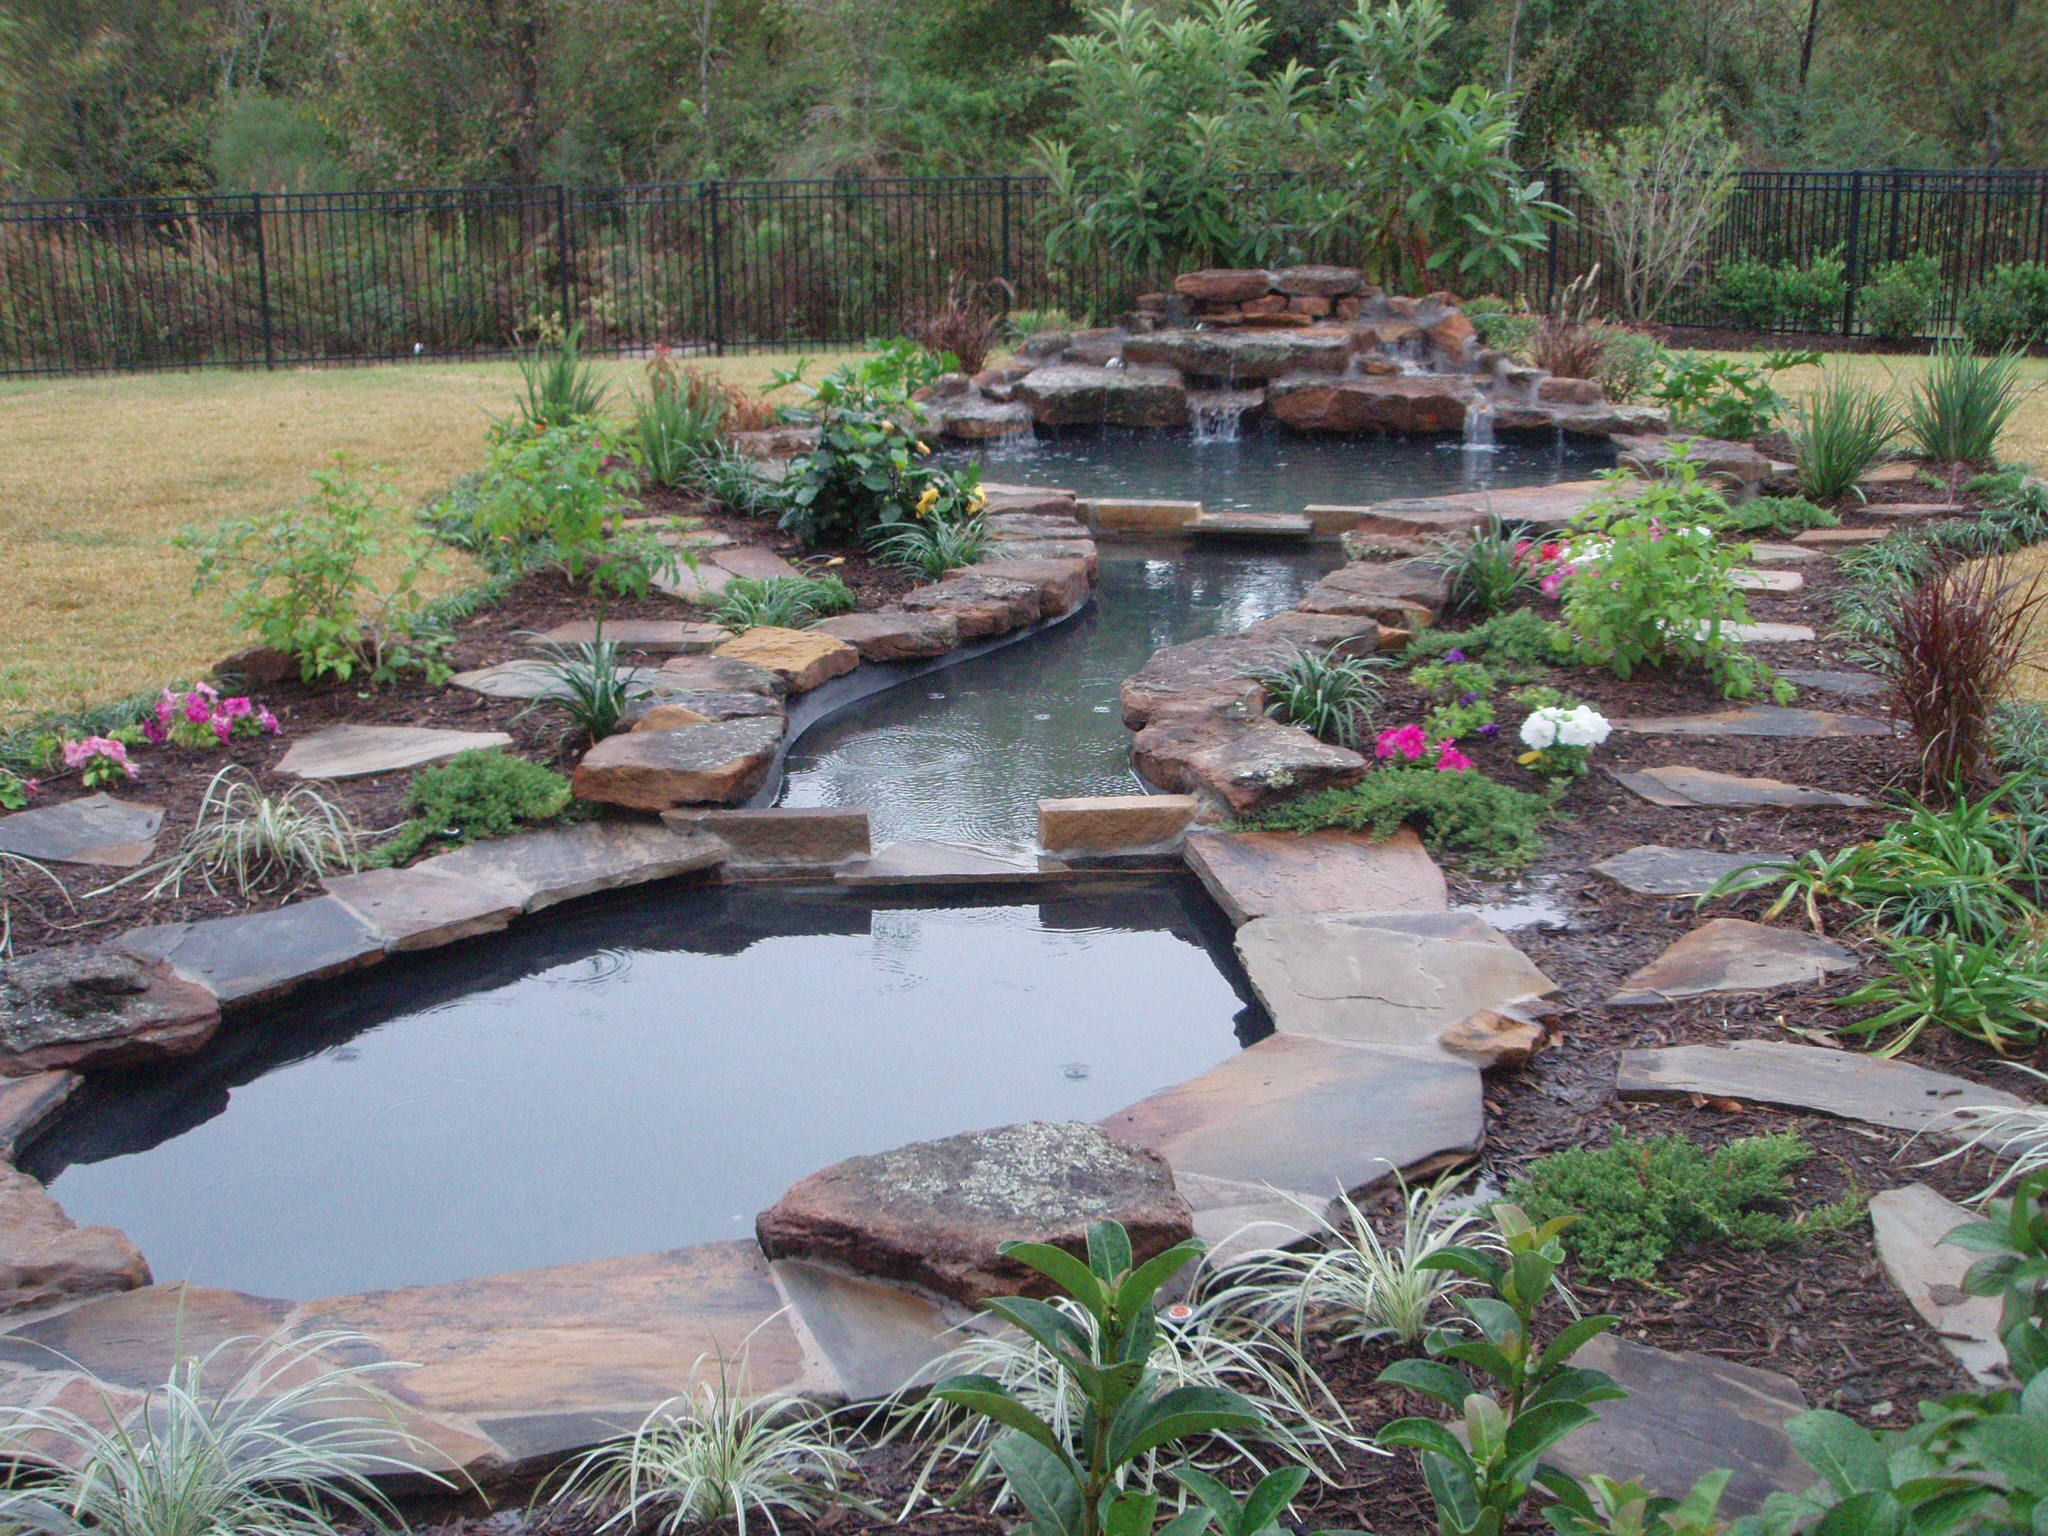 Natural pond landscaping home garden ideas large for Decorative pond fish crossword